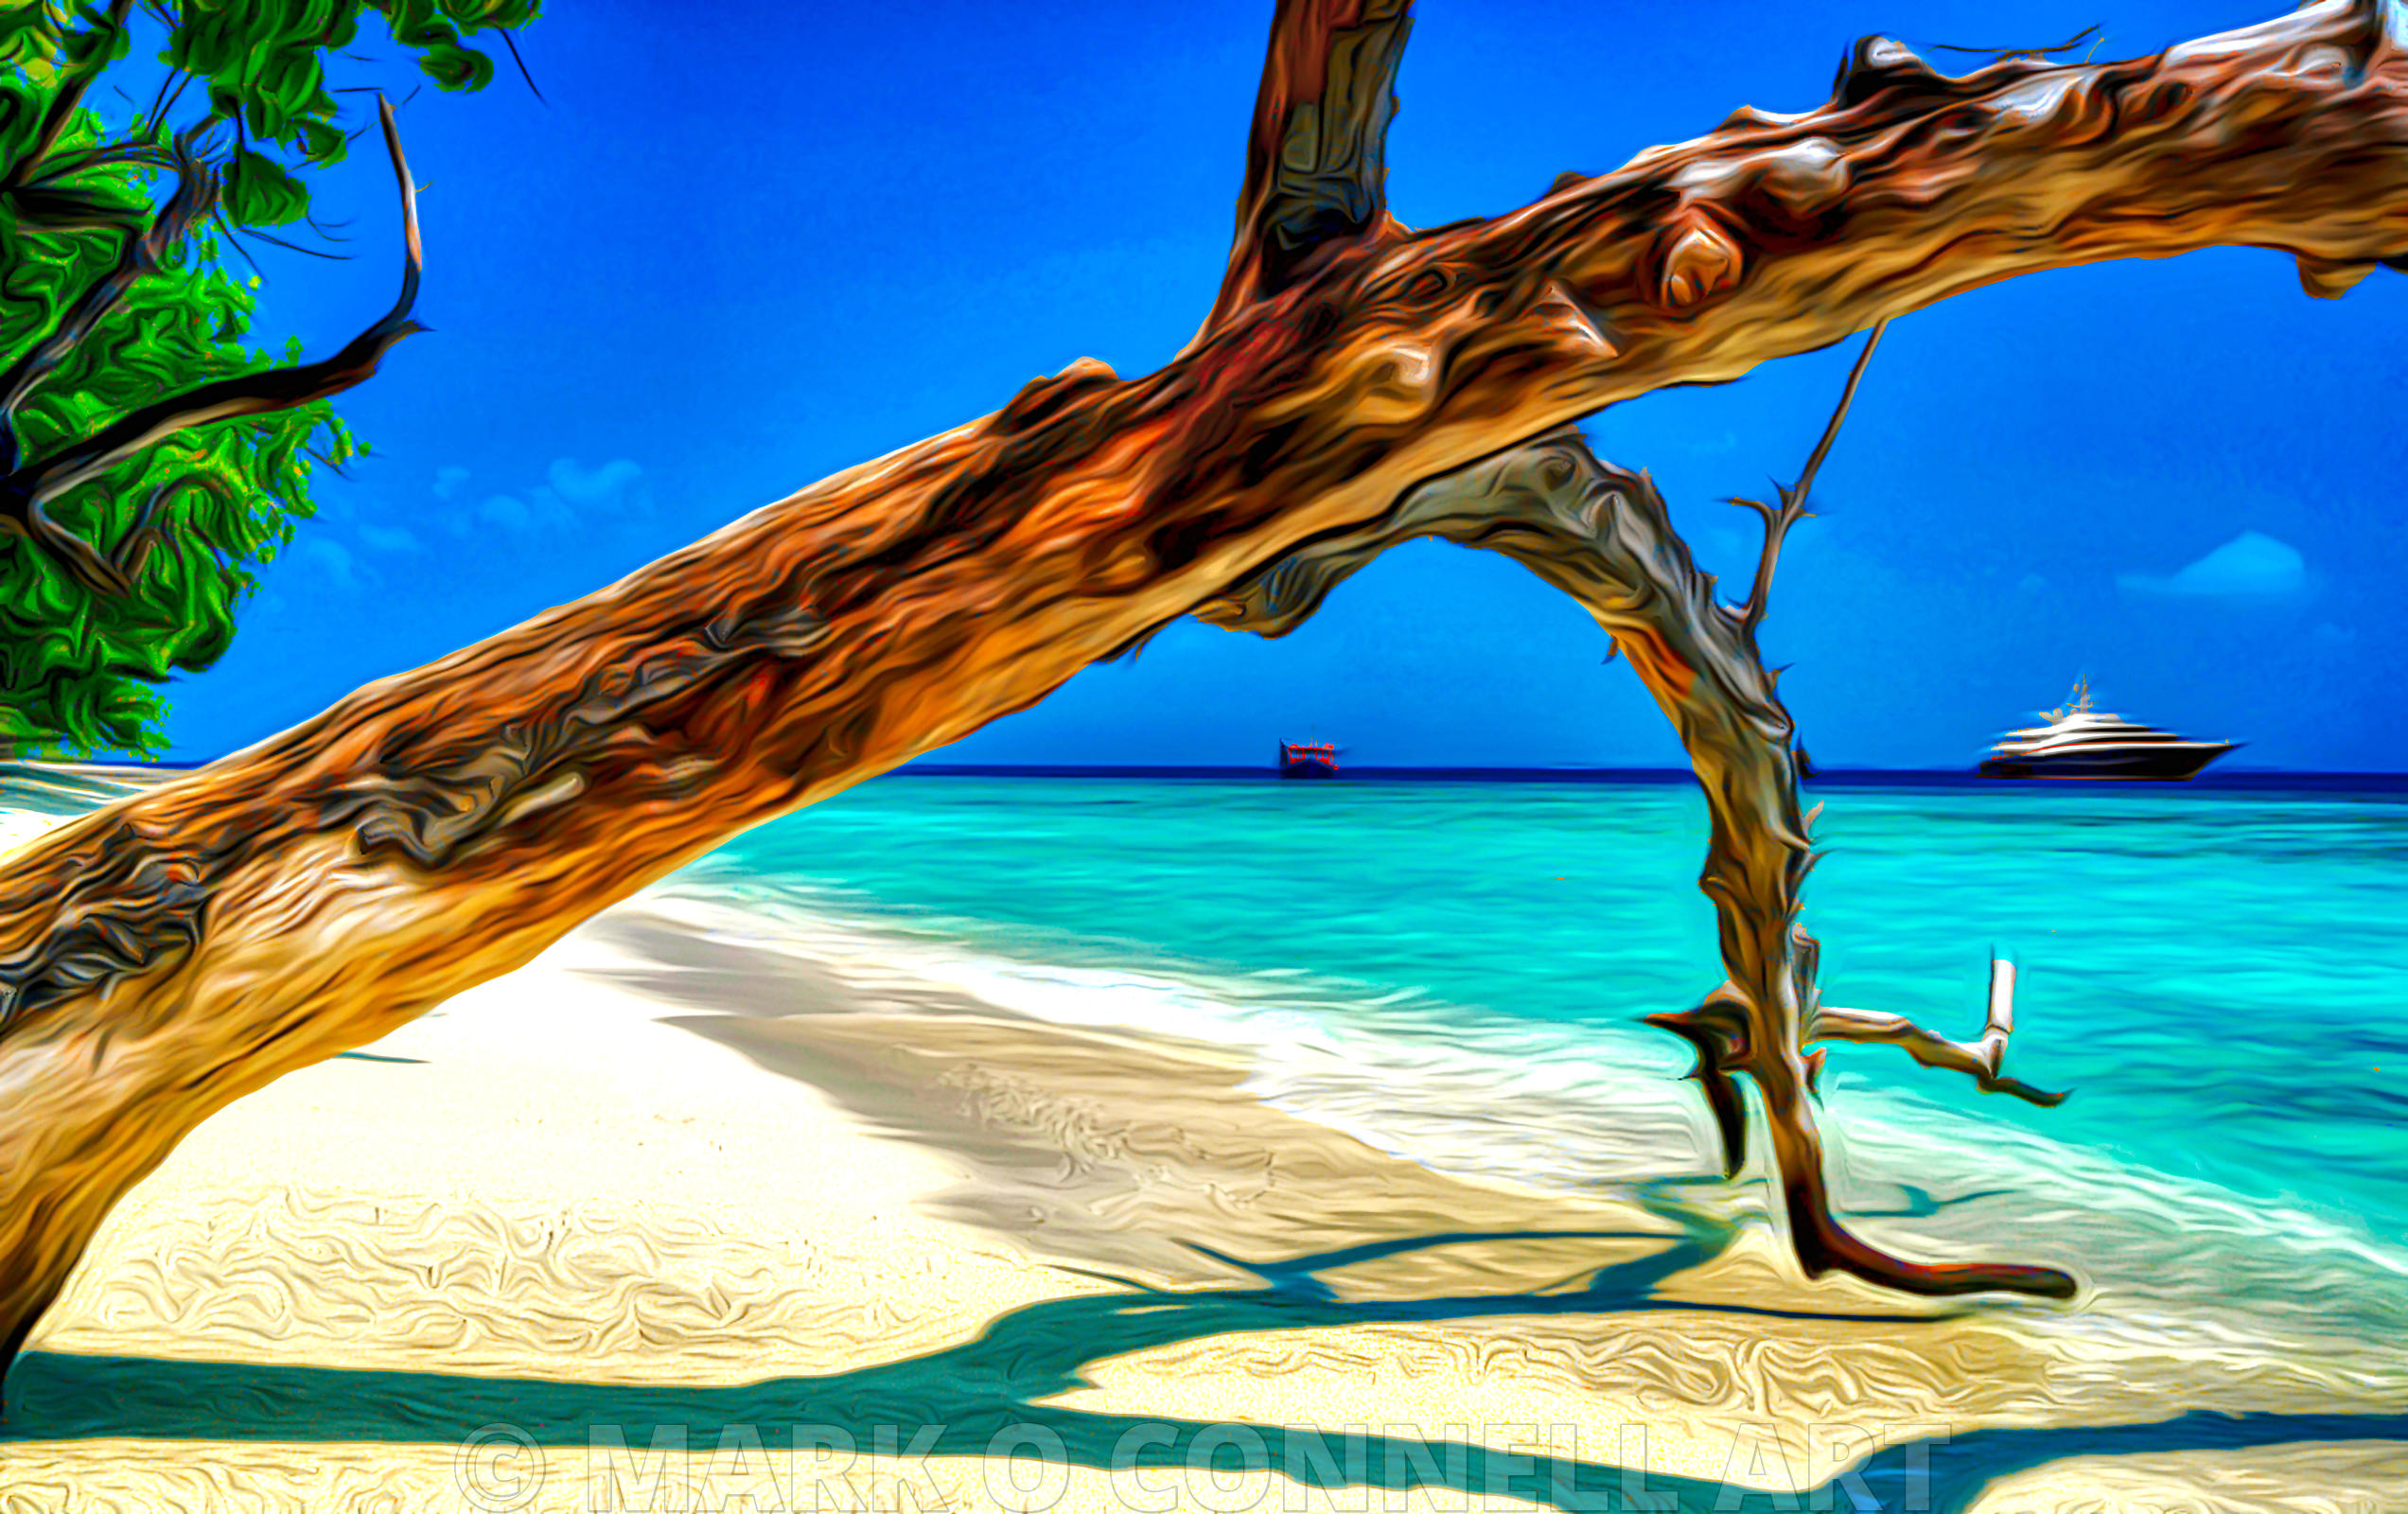 art,airbrush,painting,superyacht,wheels,maldives,tree,trunk,beach,sand,water,ocean,sea,